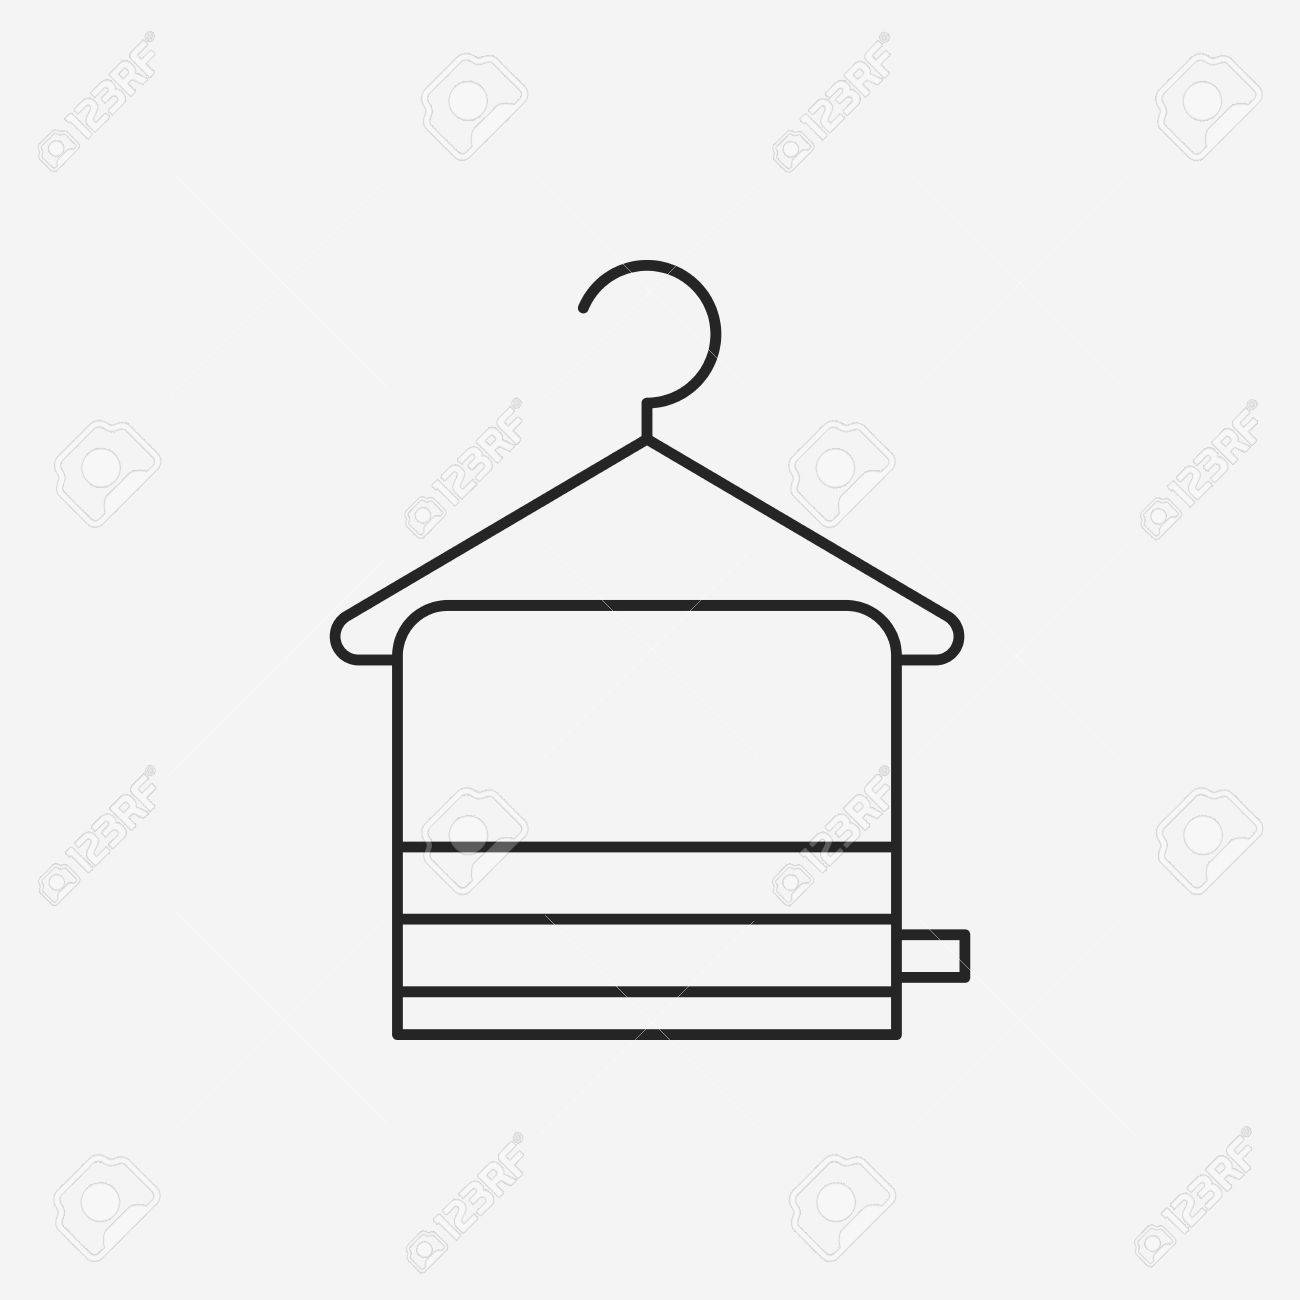 Towel Hanger Towel Hanger Line Icon Royalty Free Cliparts Vectors And Stock